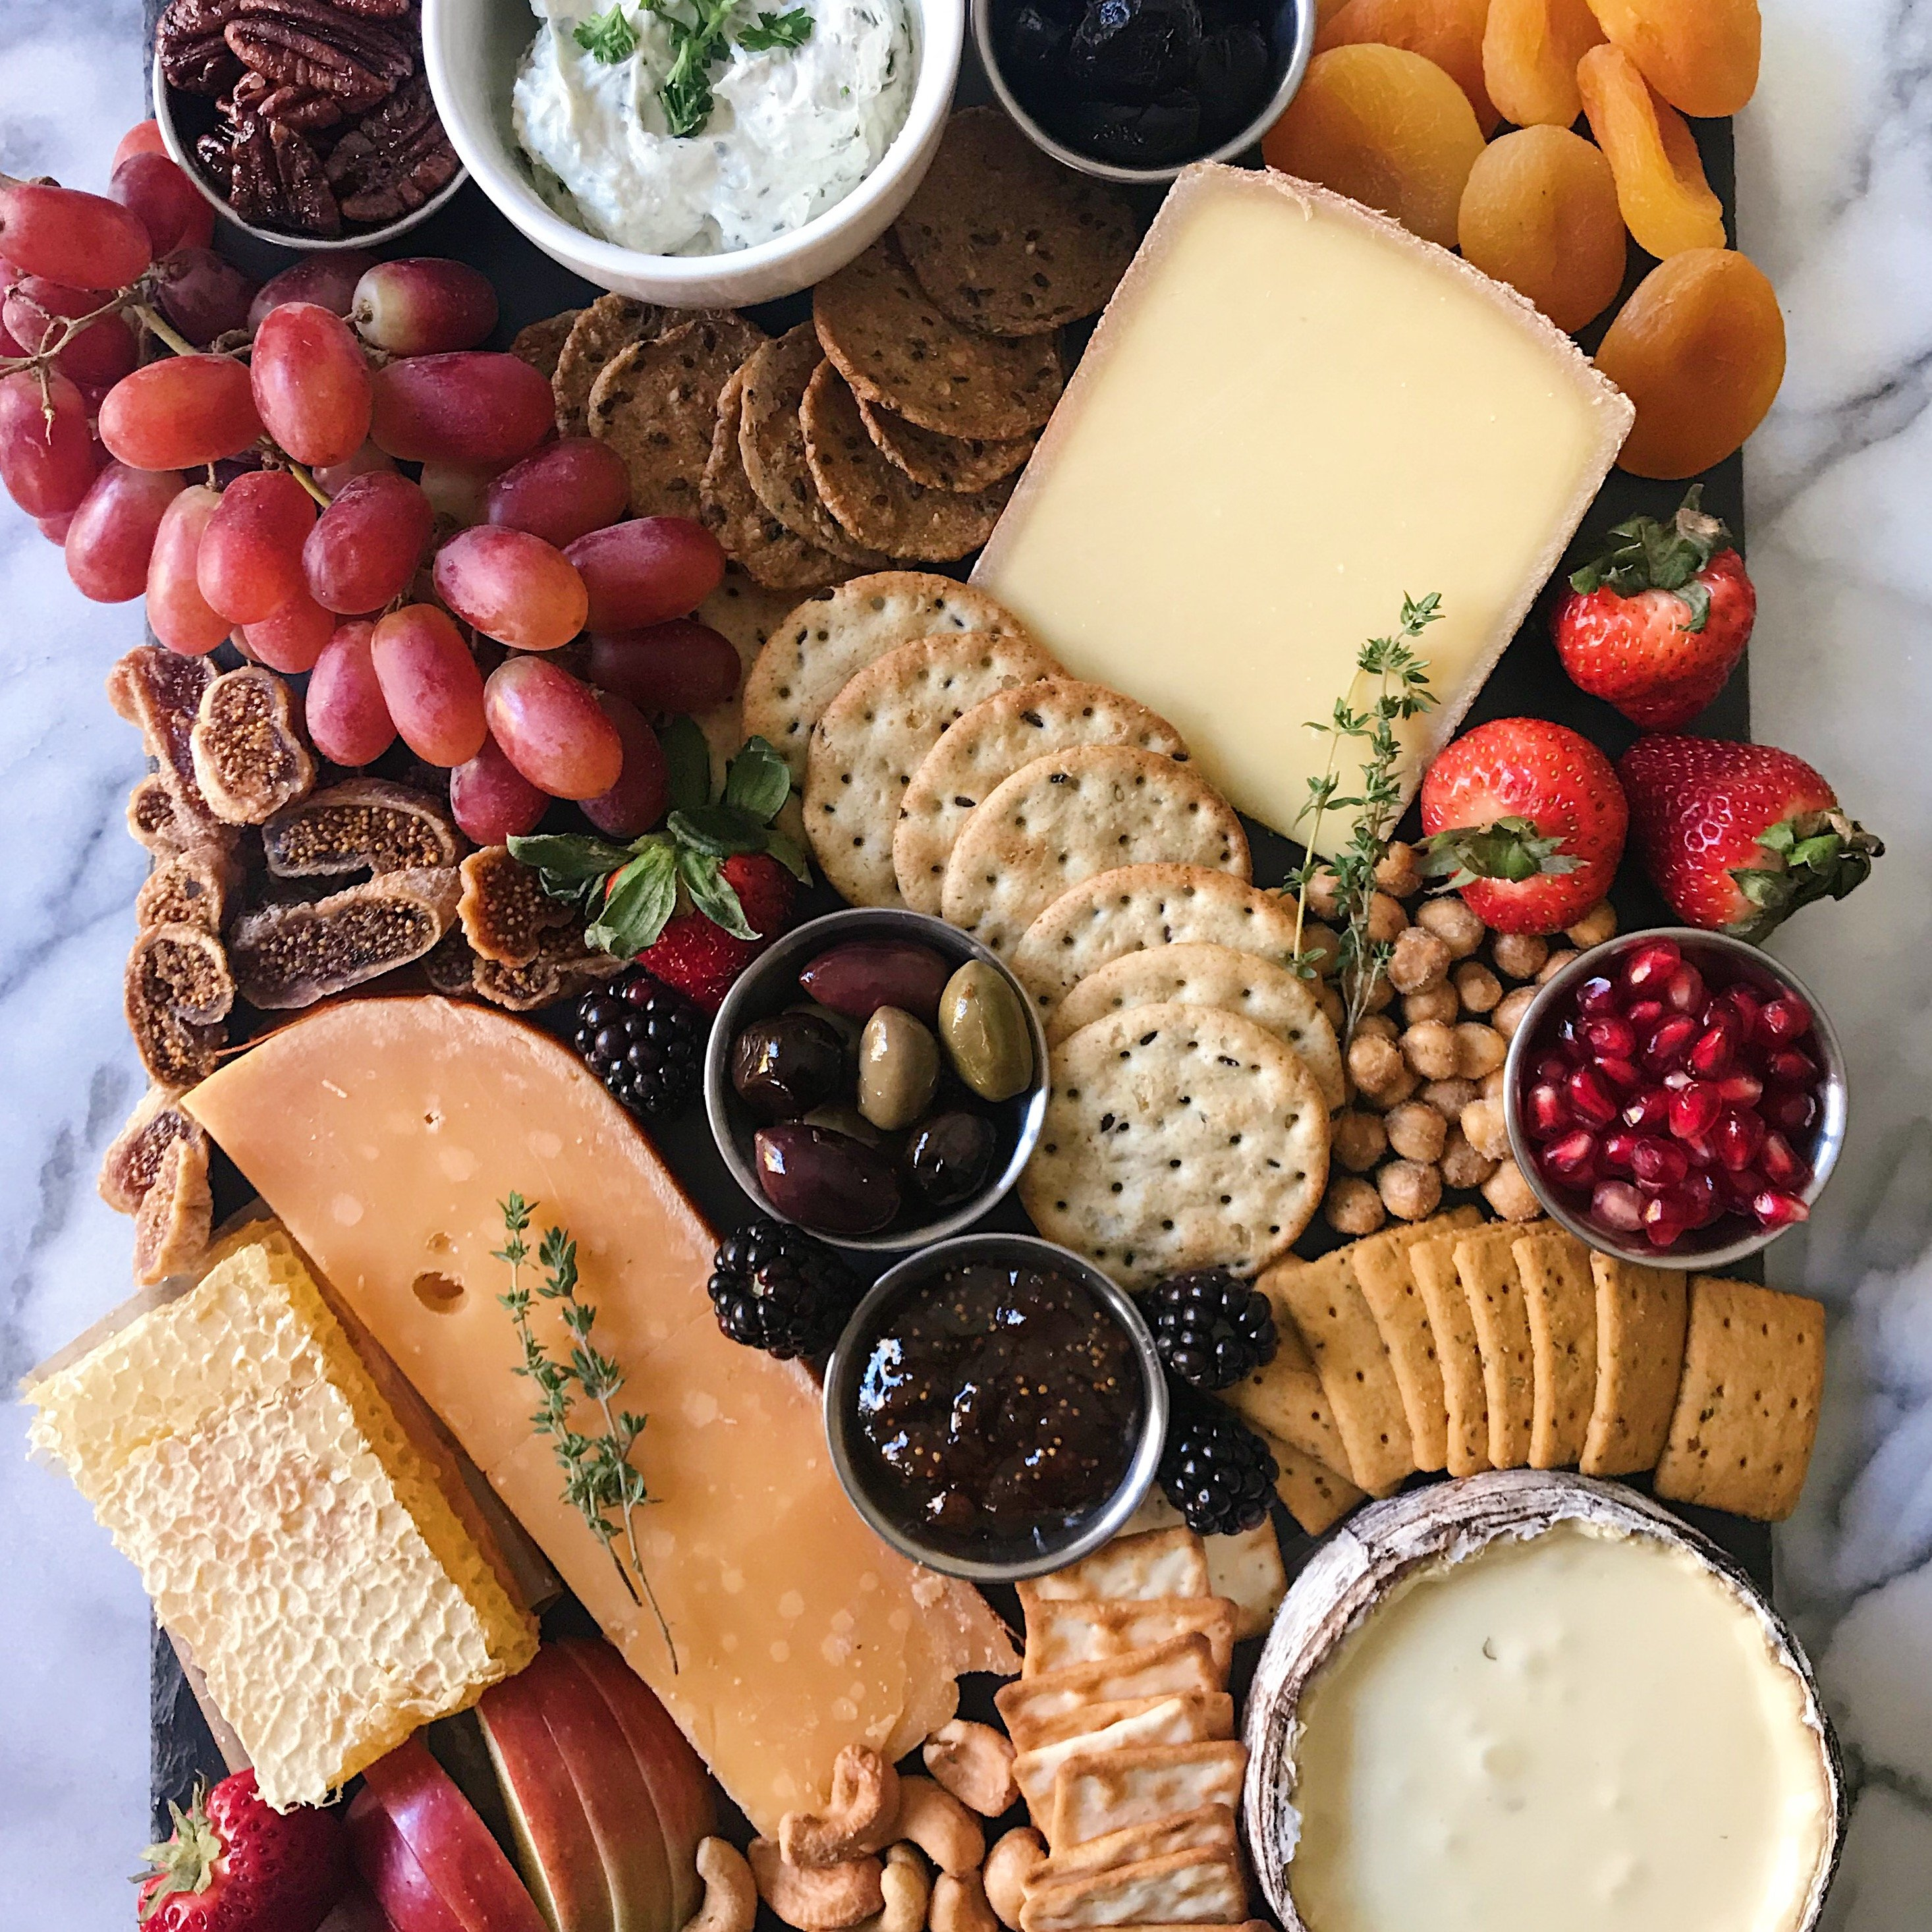 gluten free Holiday Cheese Board how to make one #glutenfreerecipes www.healthygffamily.com